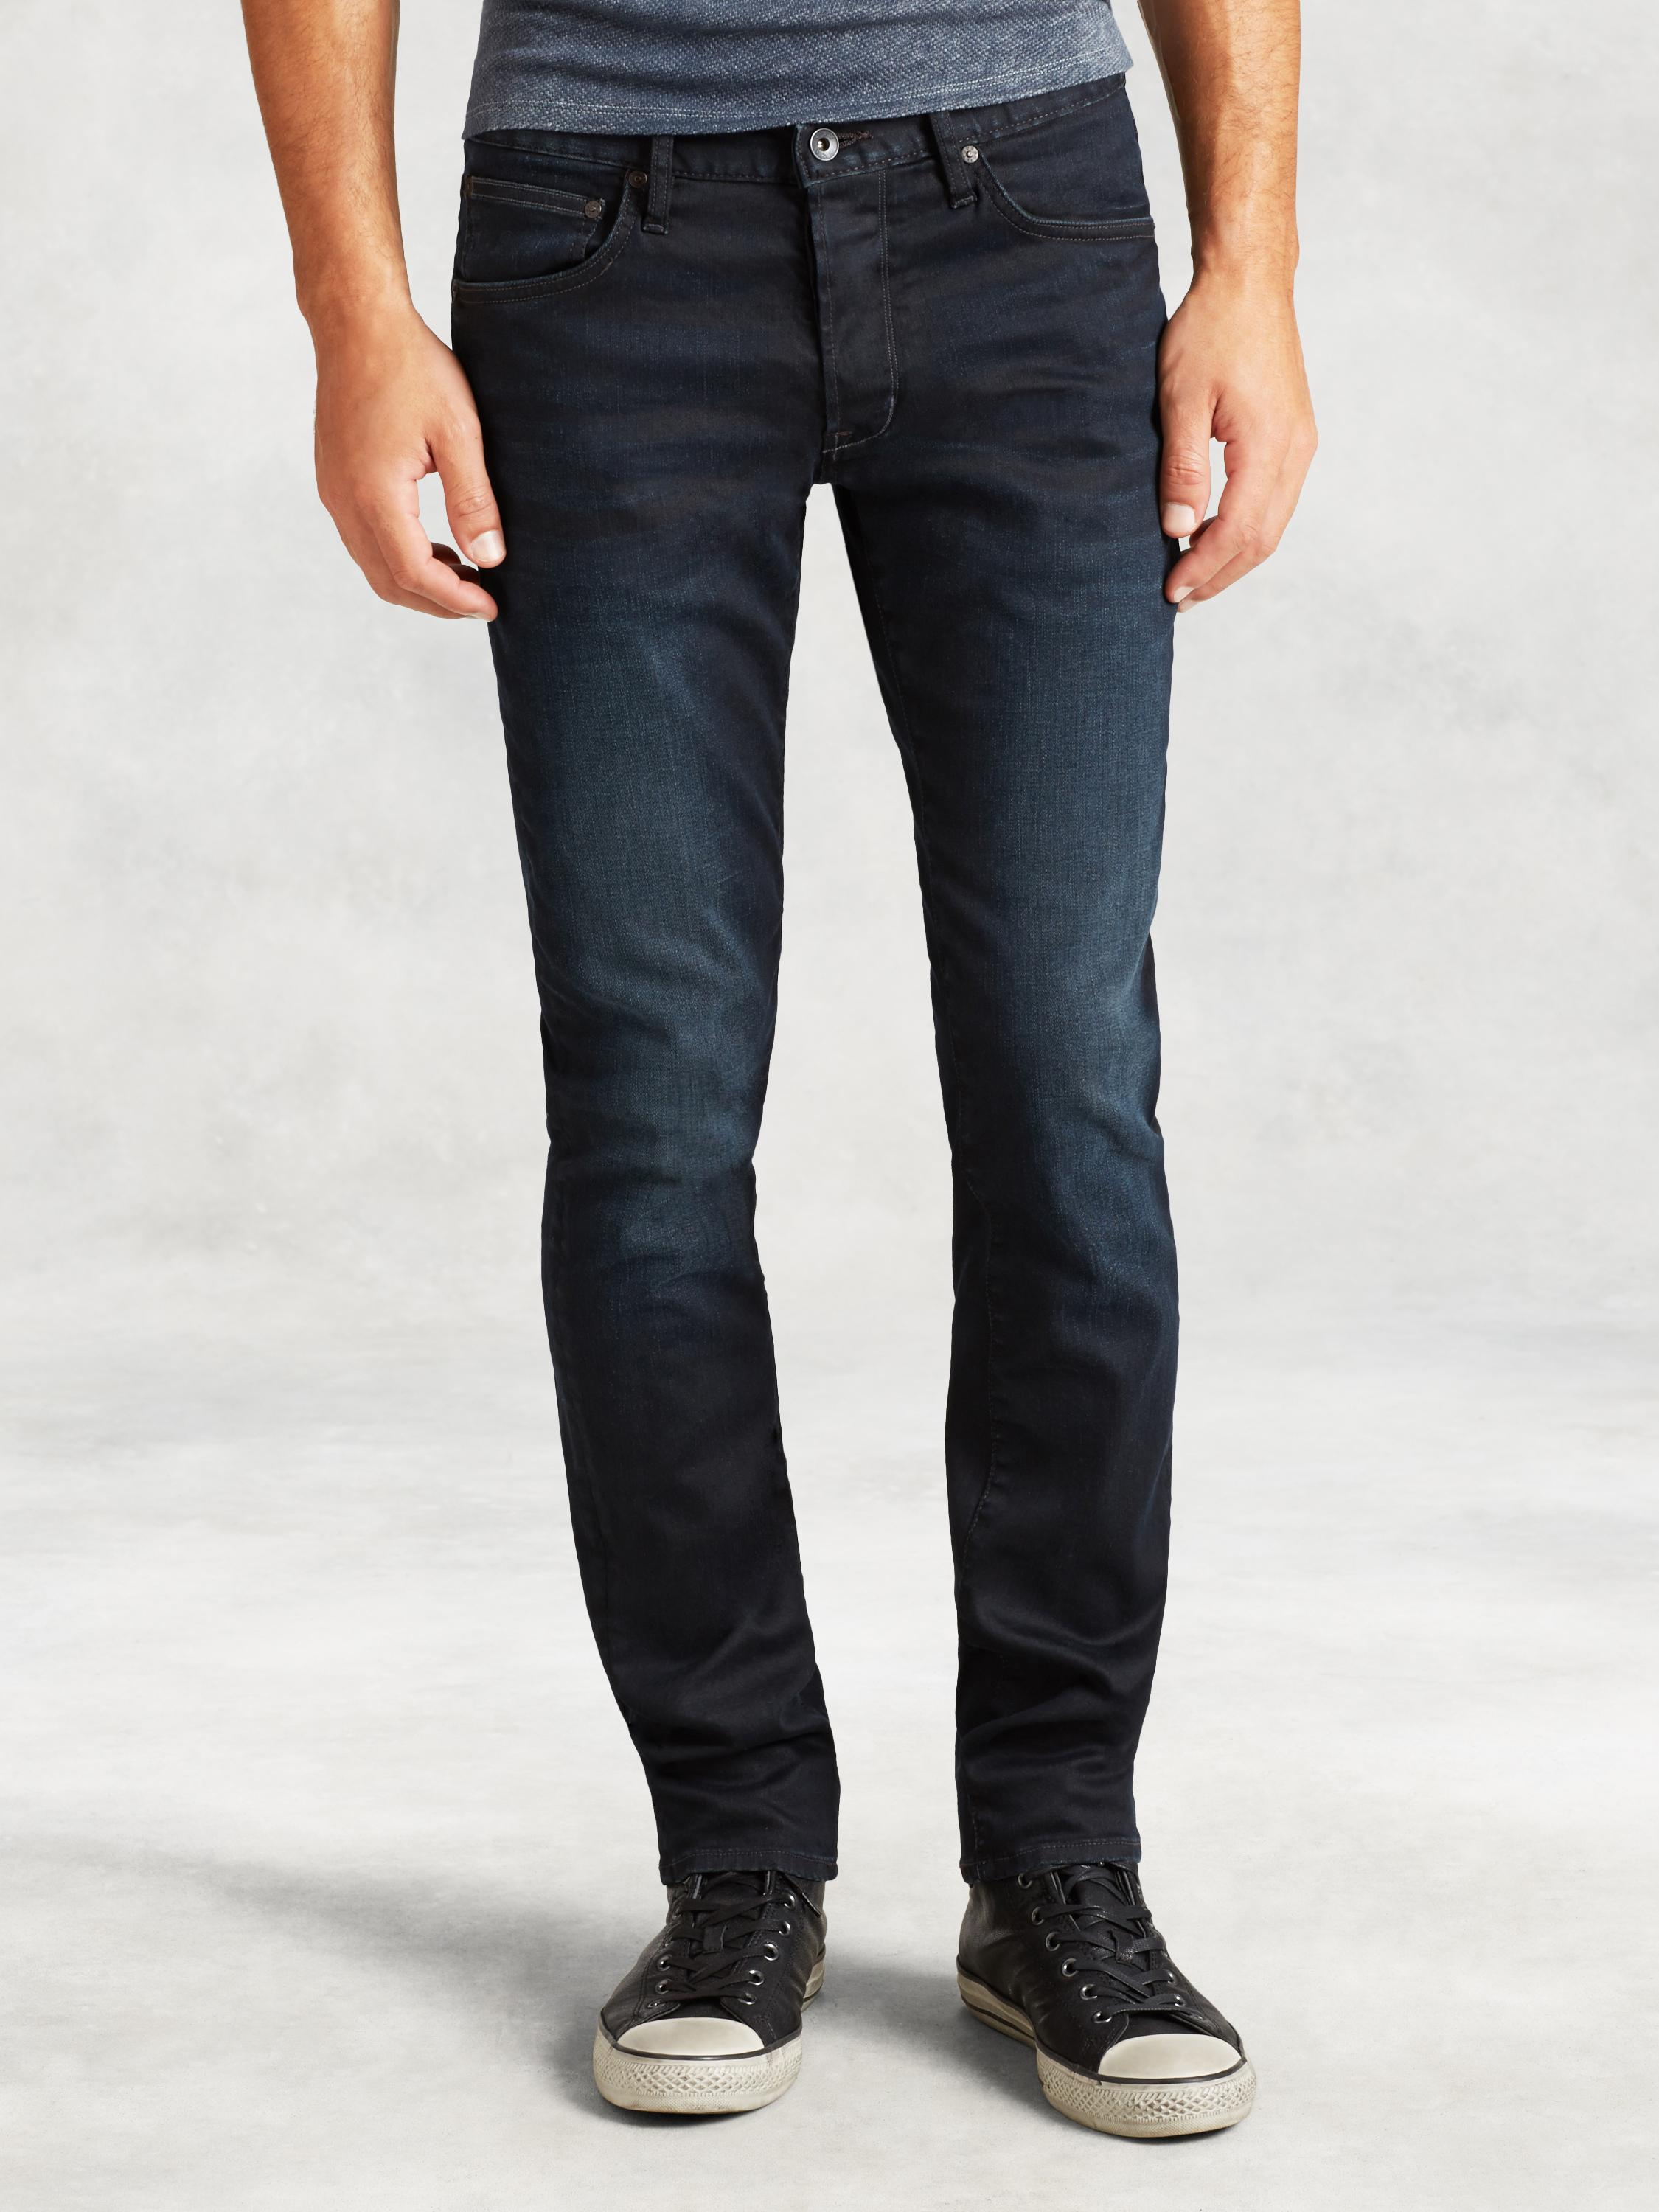 Cotton Wight Jean